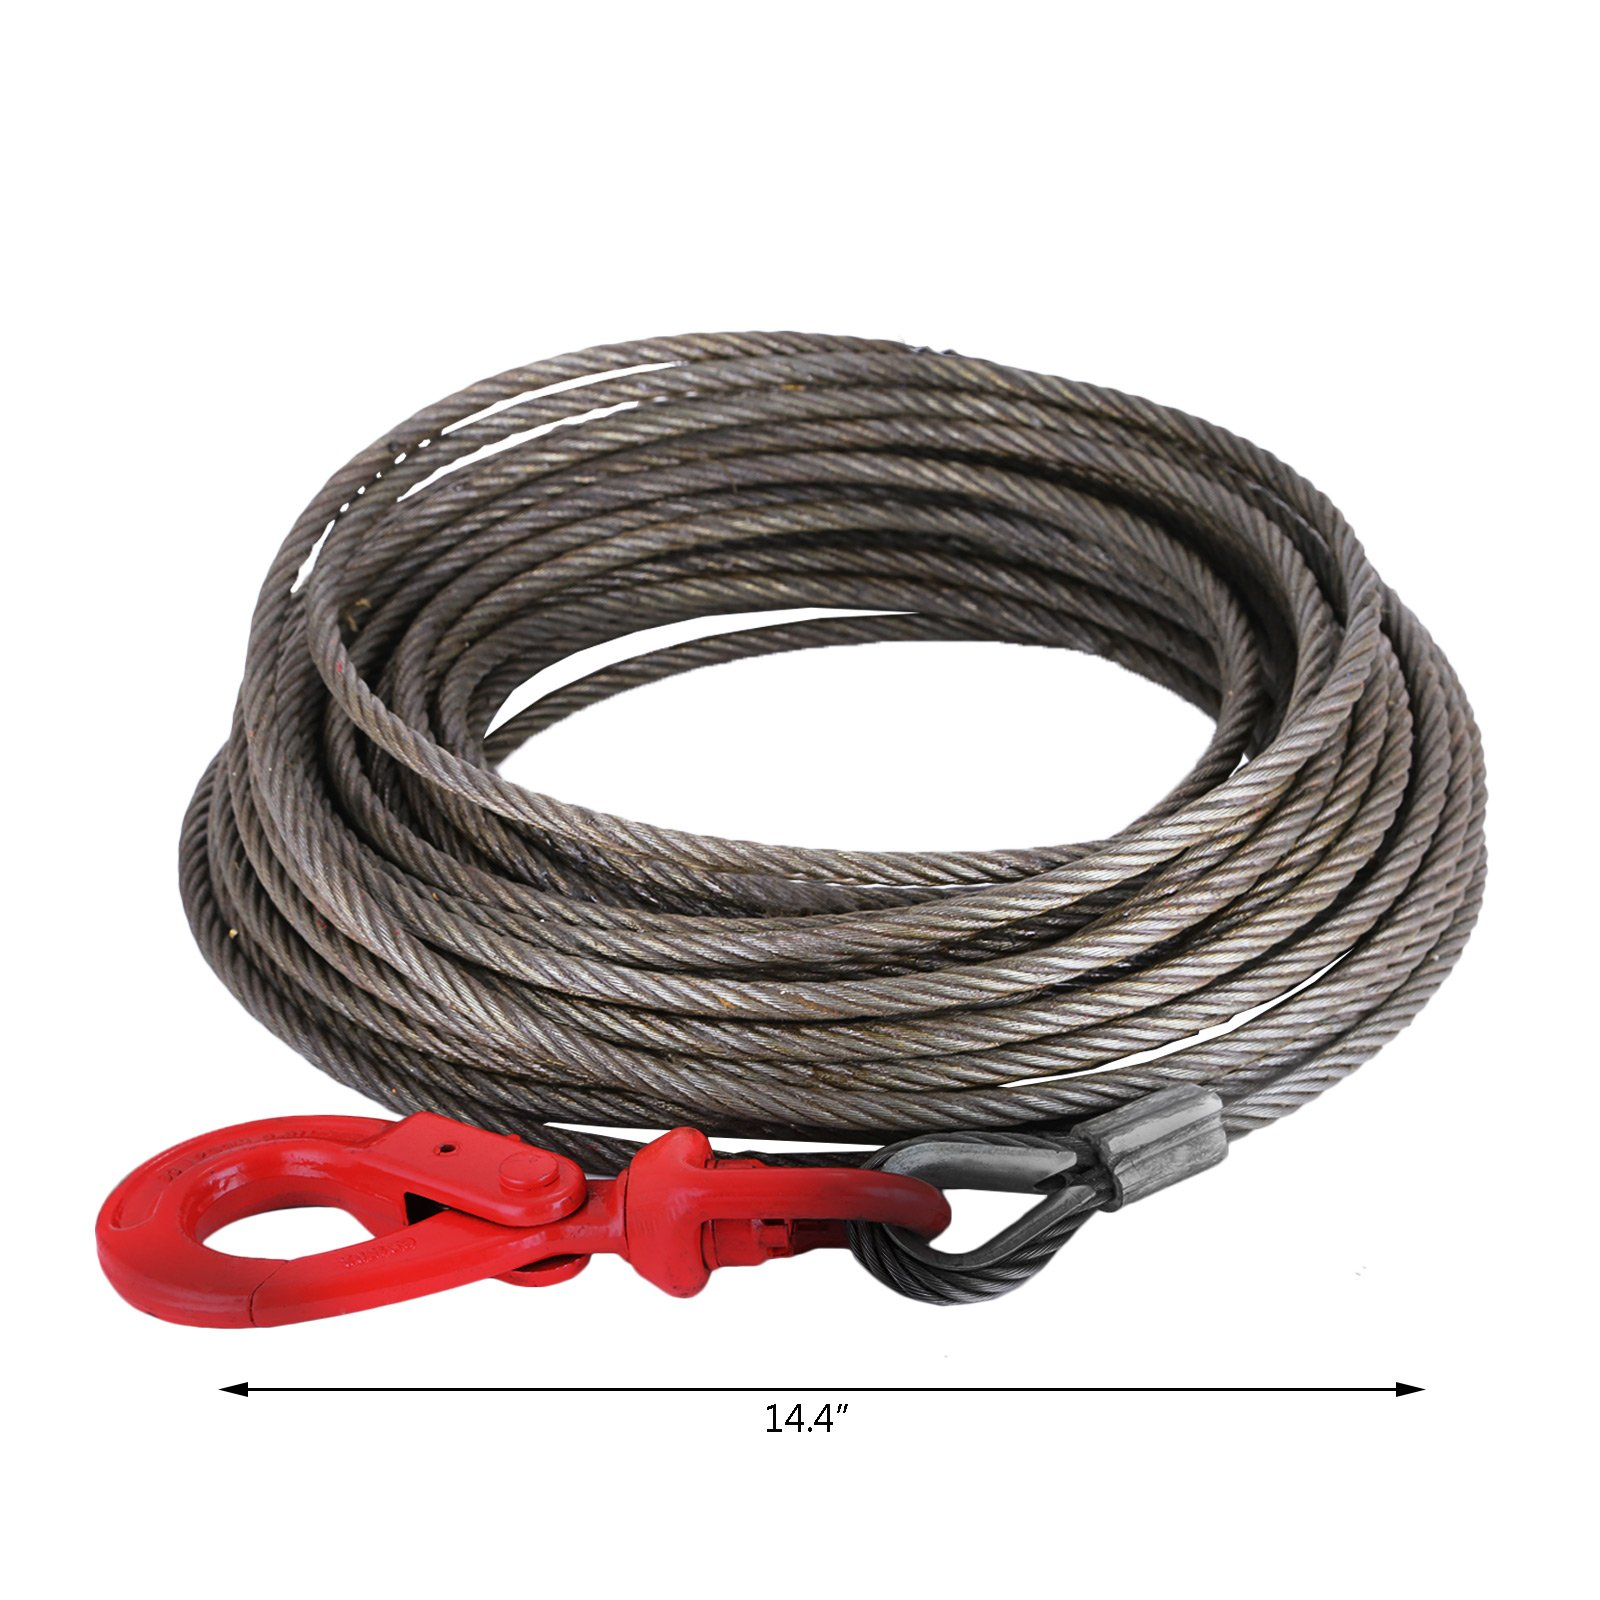 """LOVSHARE 3/8"""" 75 FT Wire Rope 2T Steel Core Winch Cable with Self Locking Swivel Hook Steel Cable for Tow Truck Flatbed (75 FT) by LOVSHARE (Image #2)"""